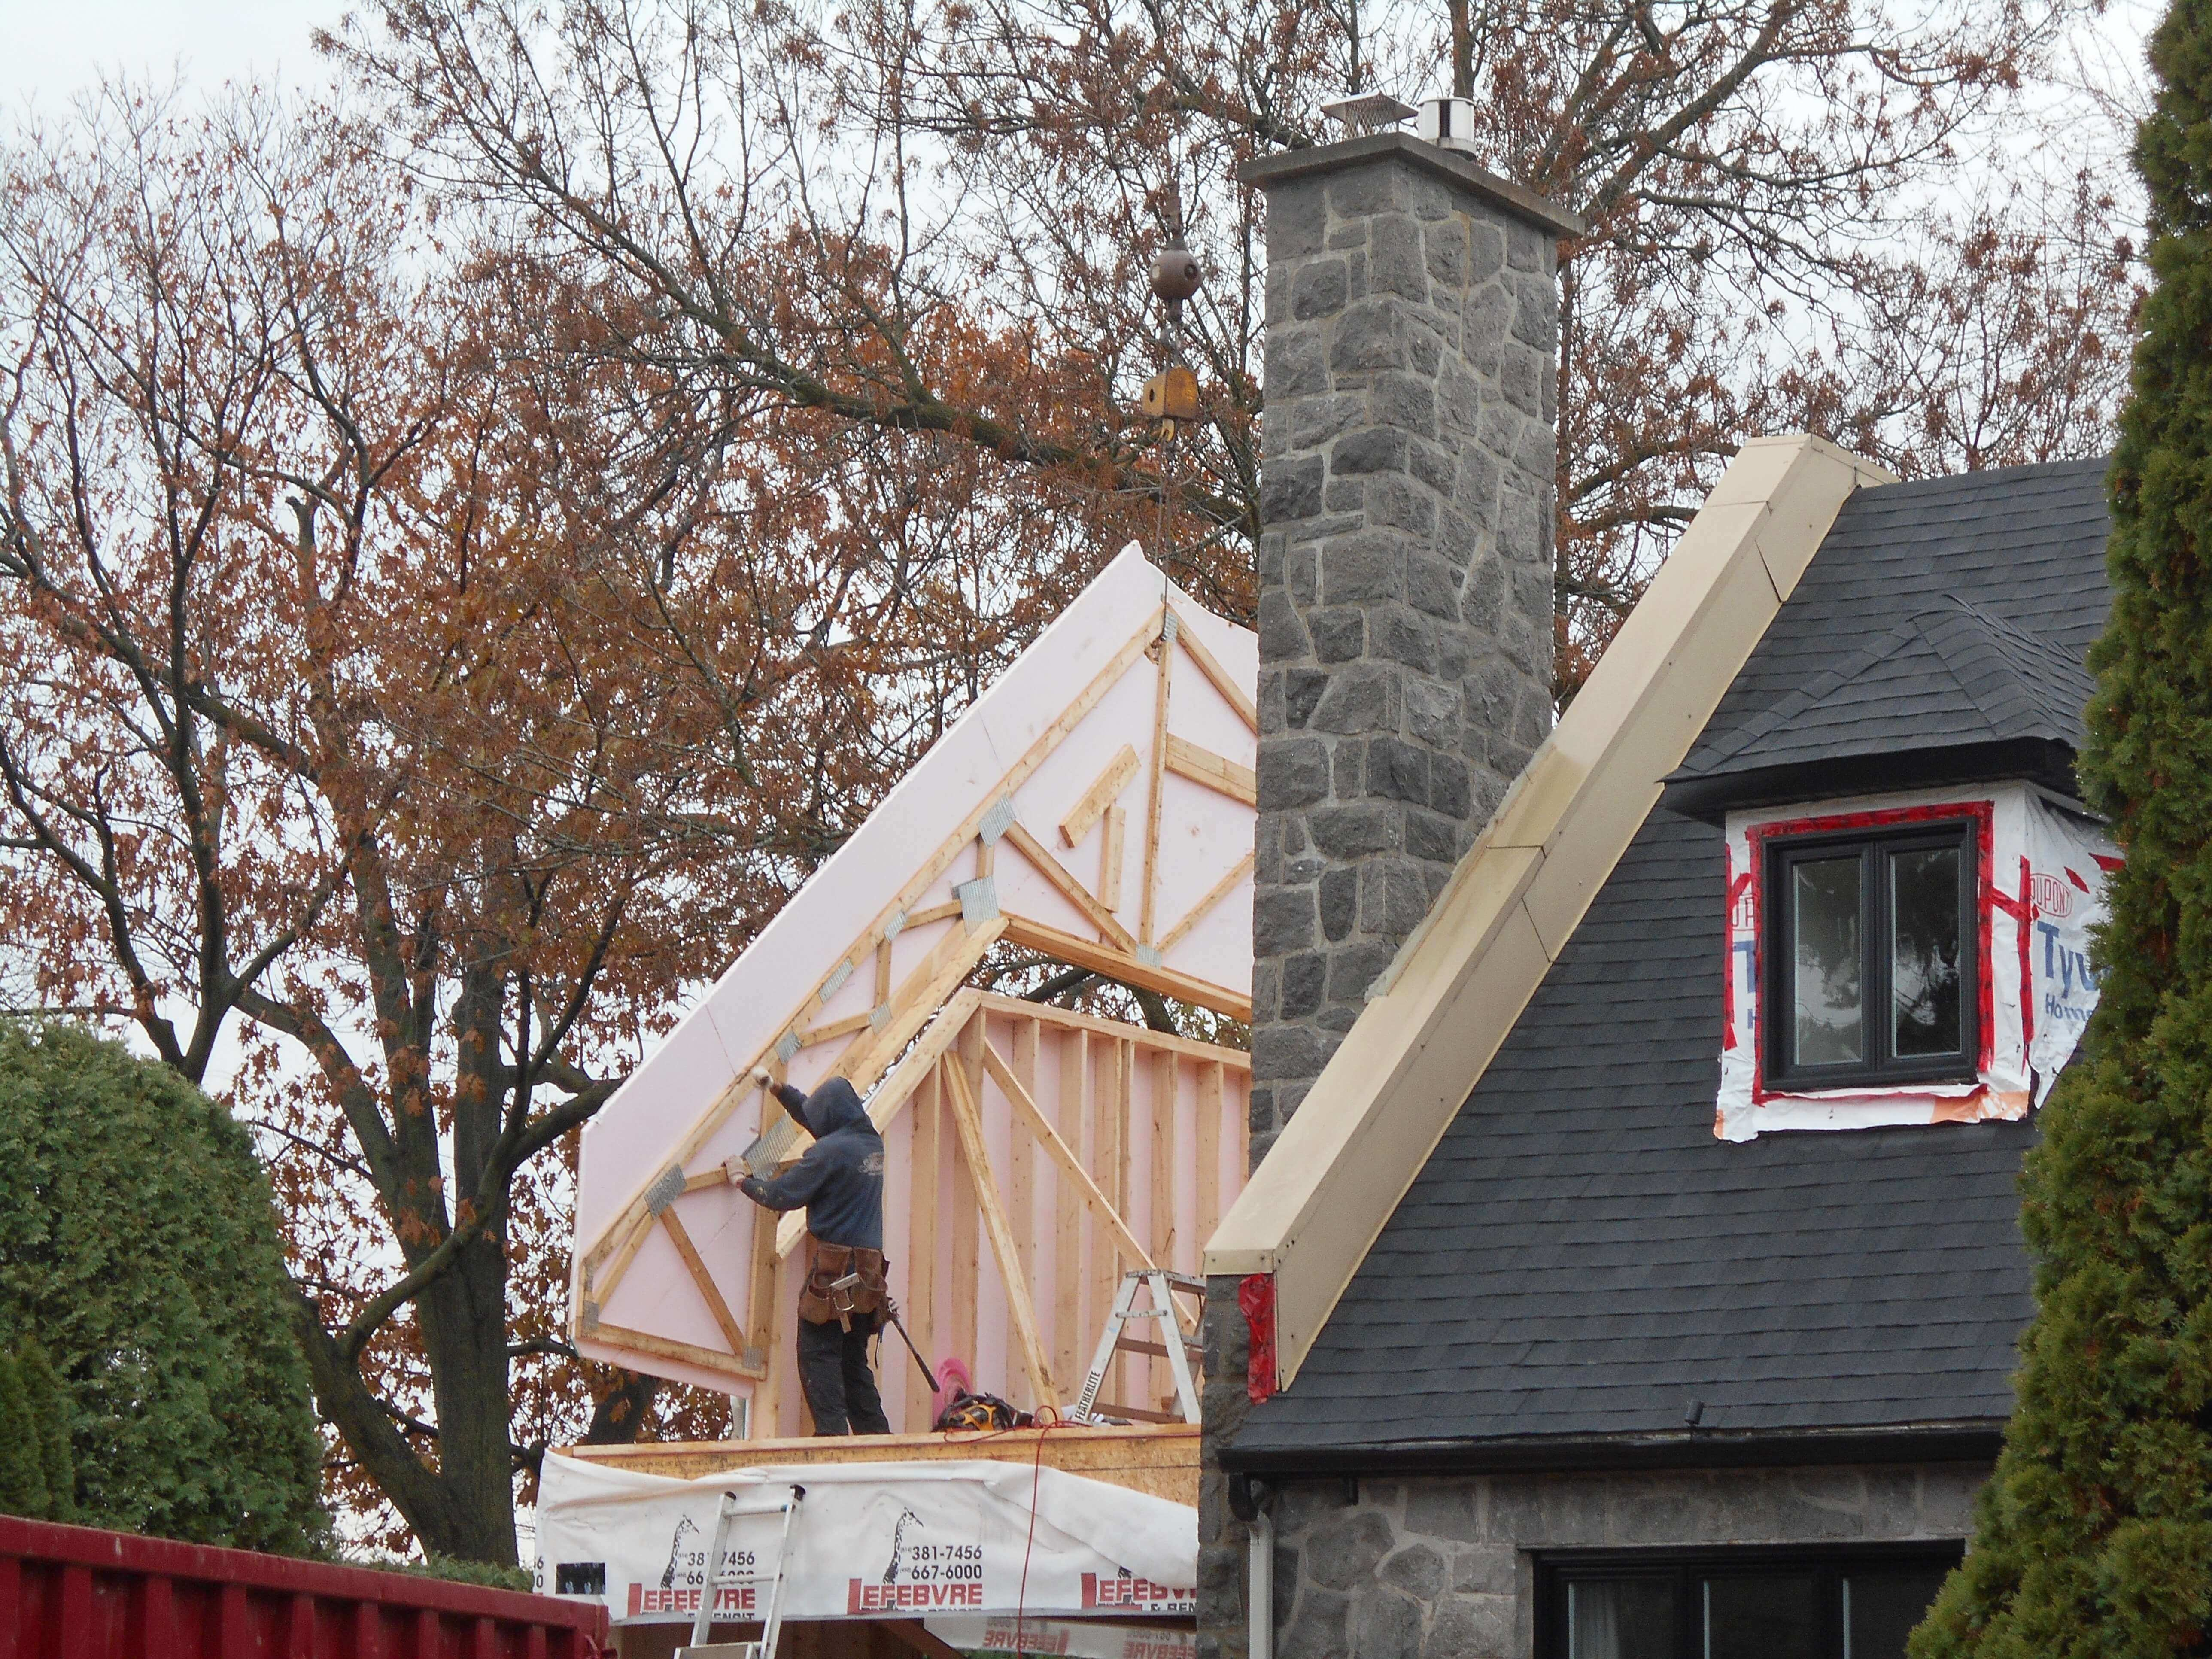 Renovations - Additions, Mascouche